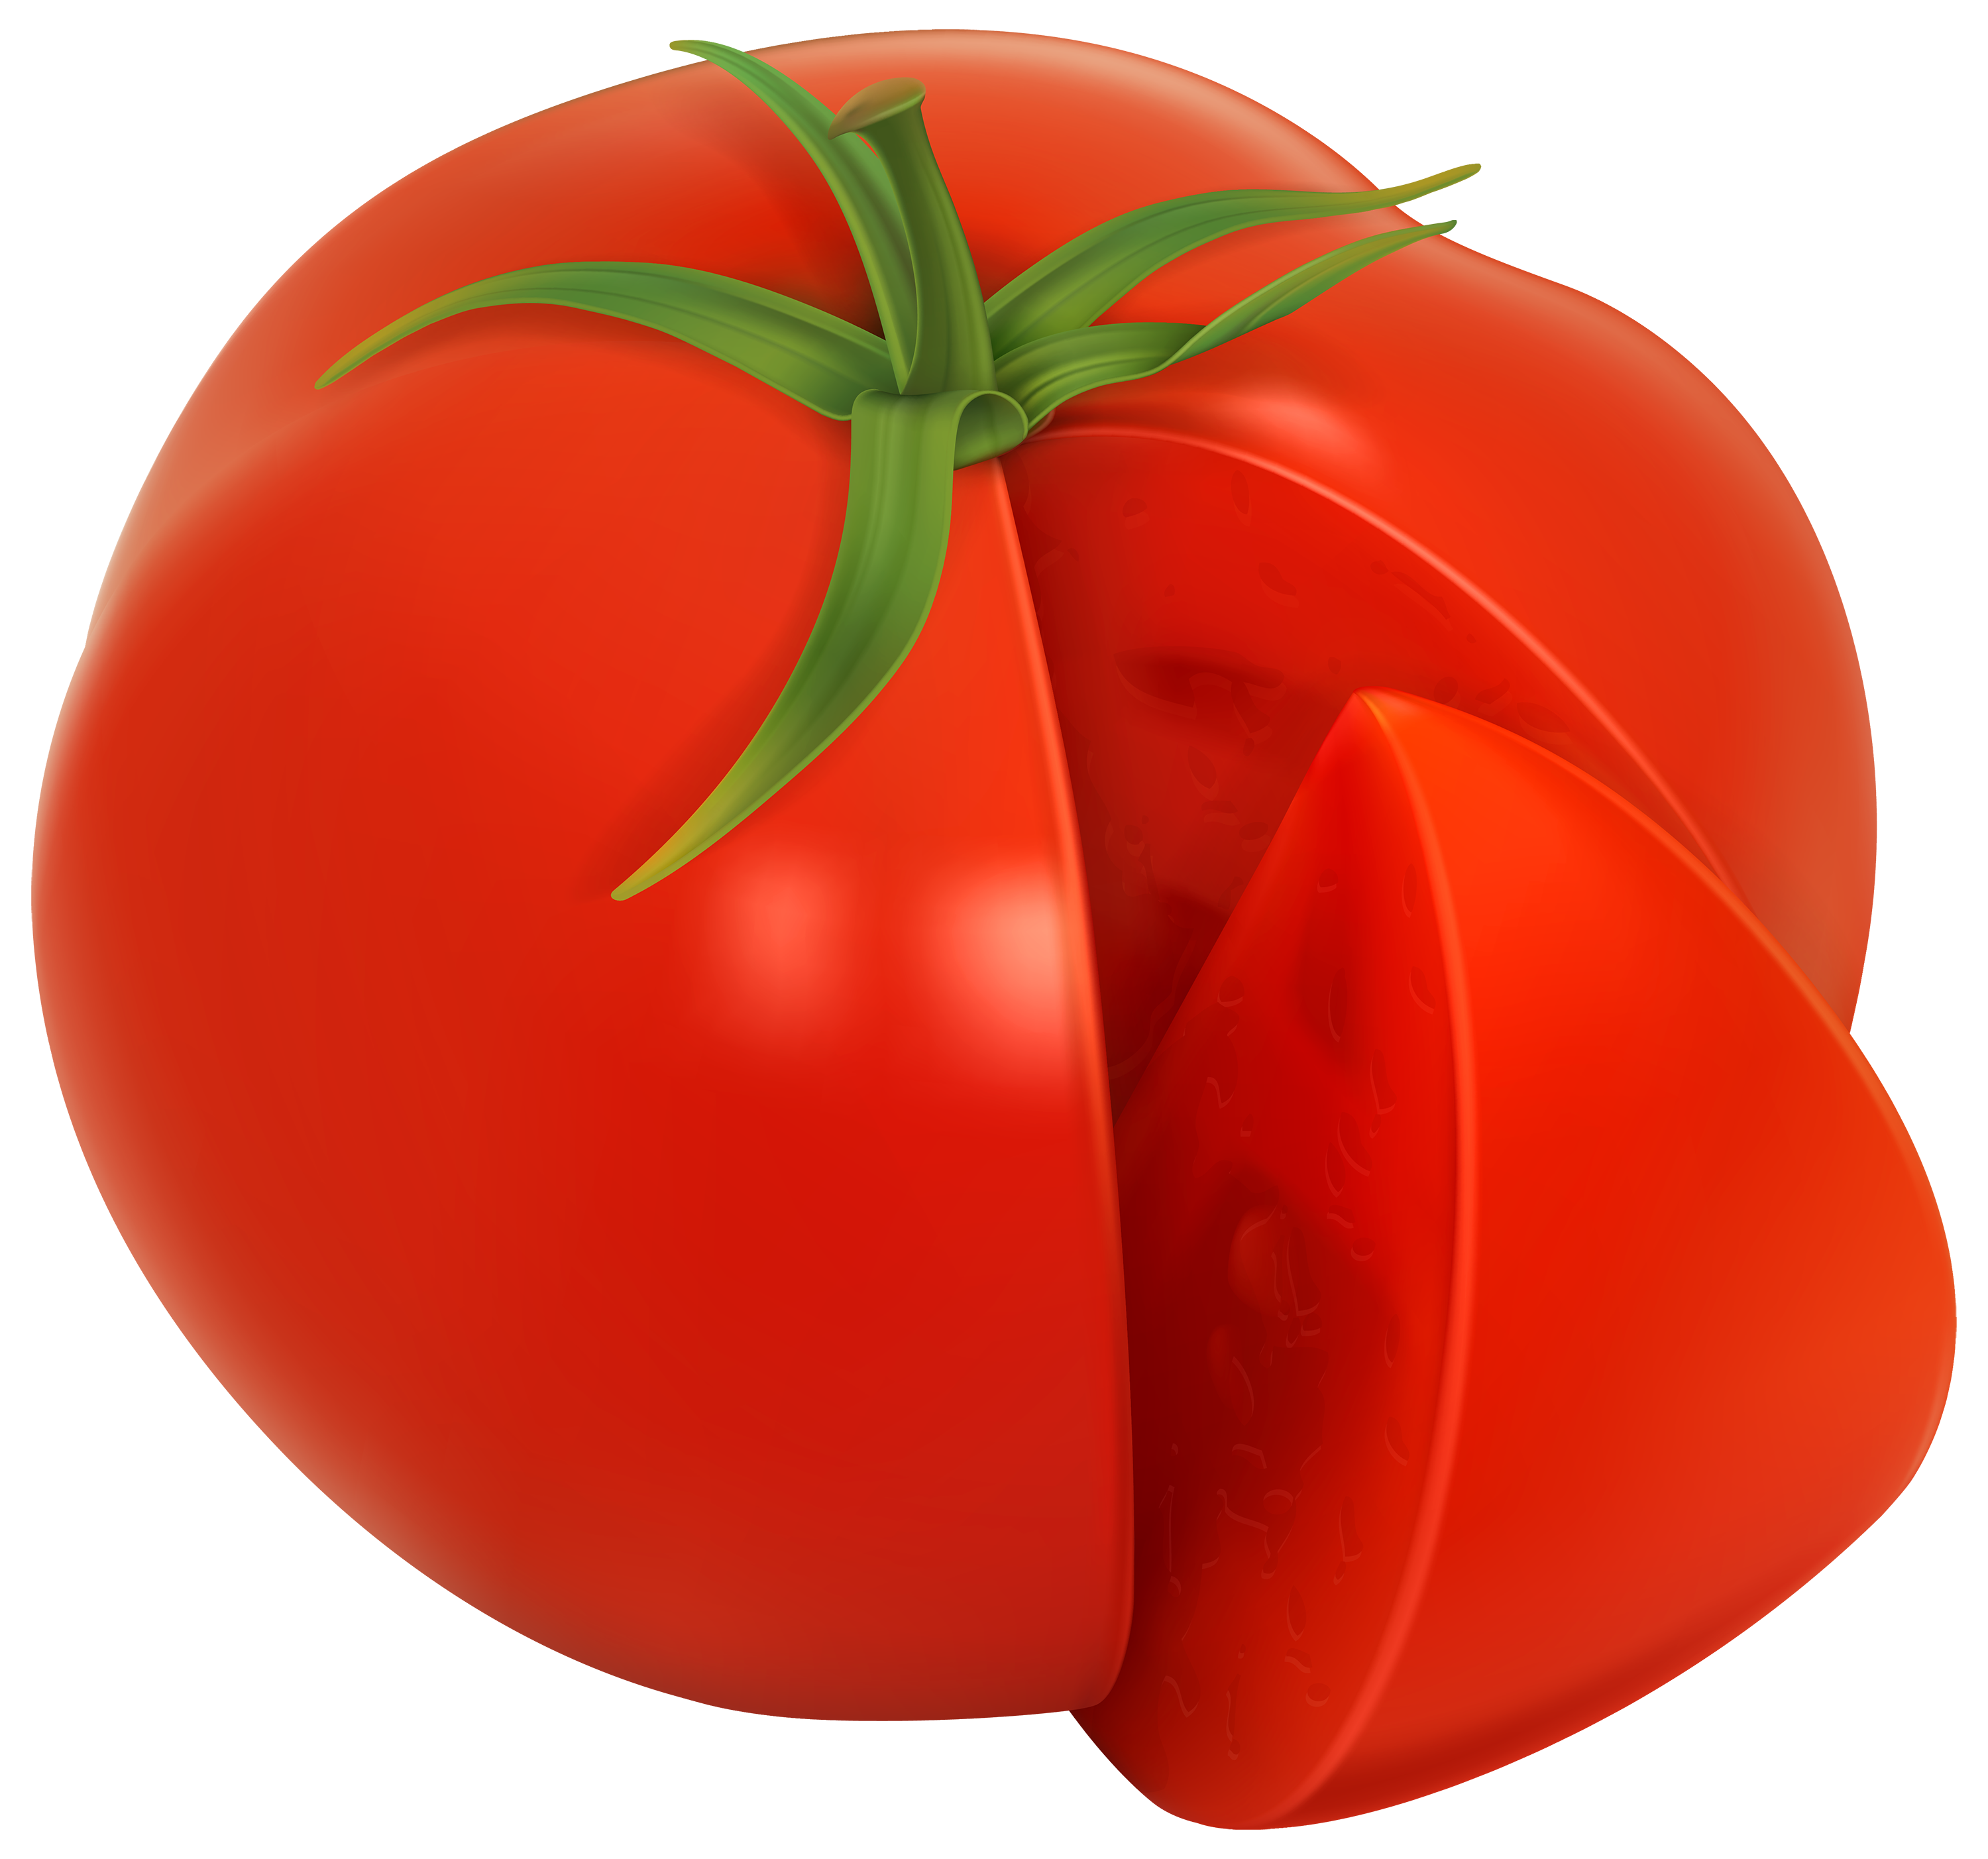 Png image best web. Clipart vegetables tomato